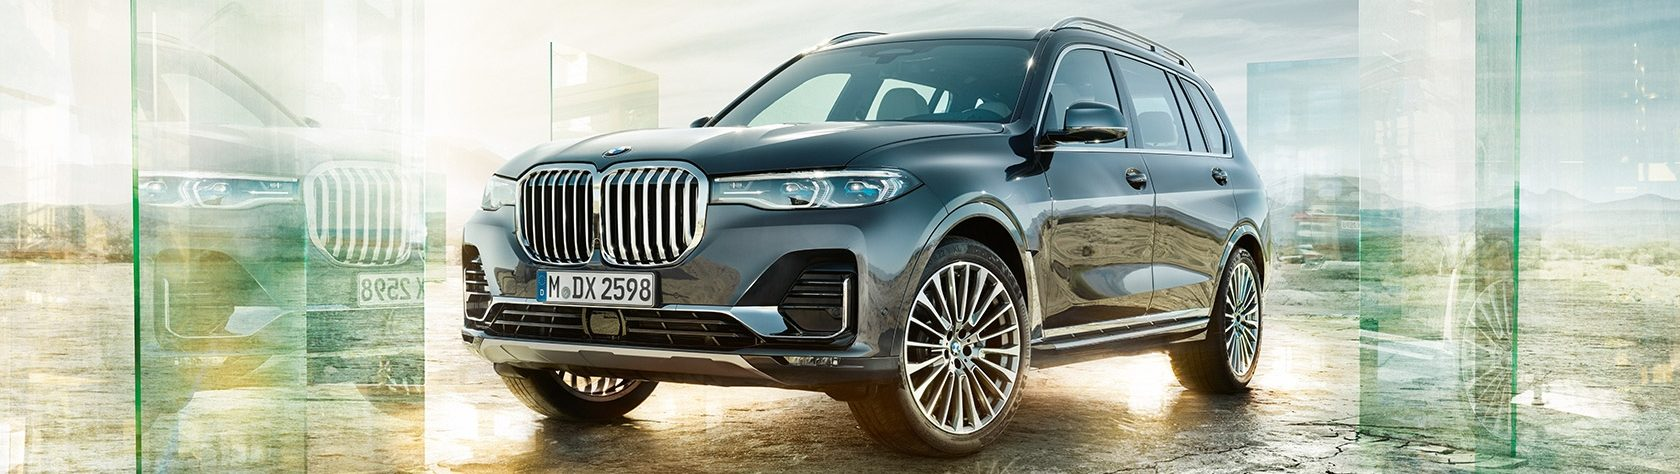 BMW X7 in a futuristic outdoor setting